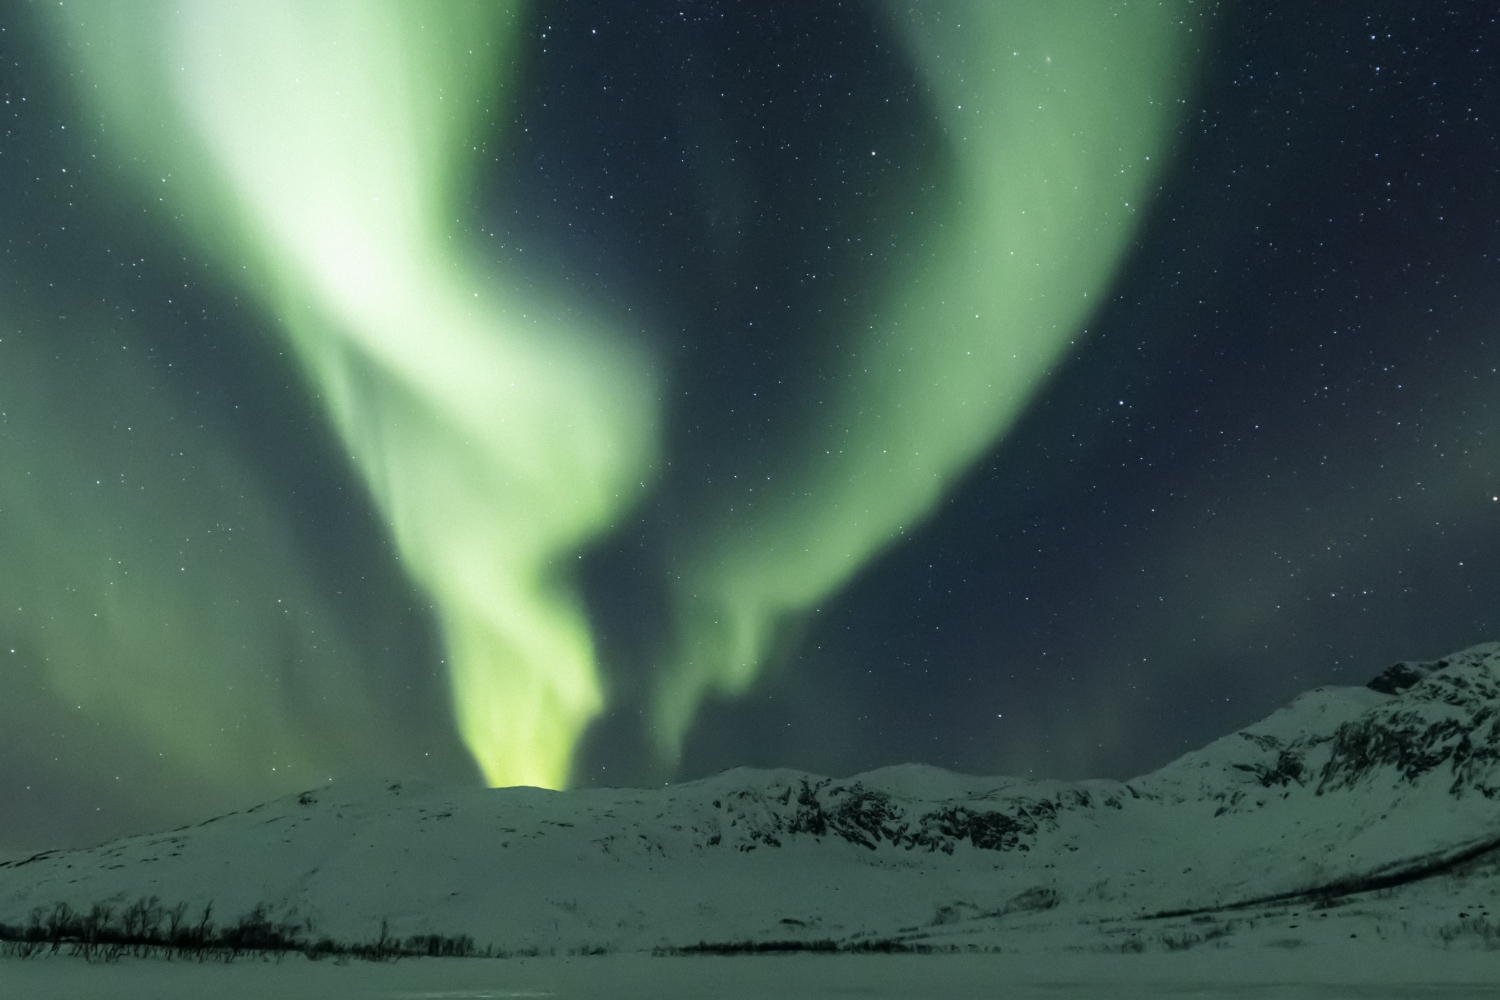 Northern lights above snowy mountain